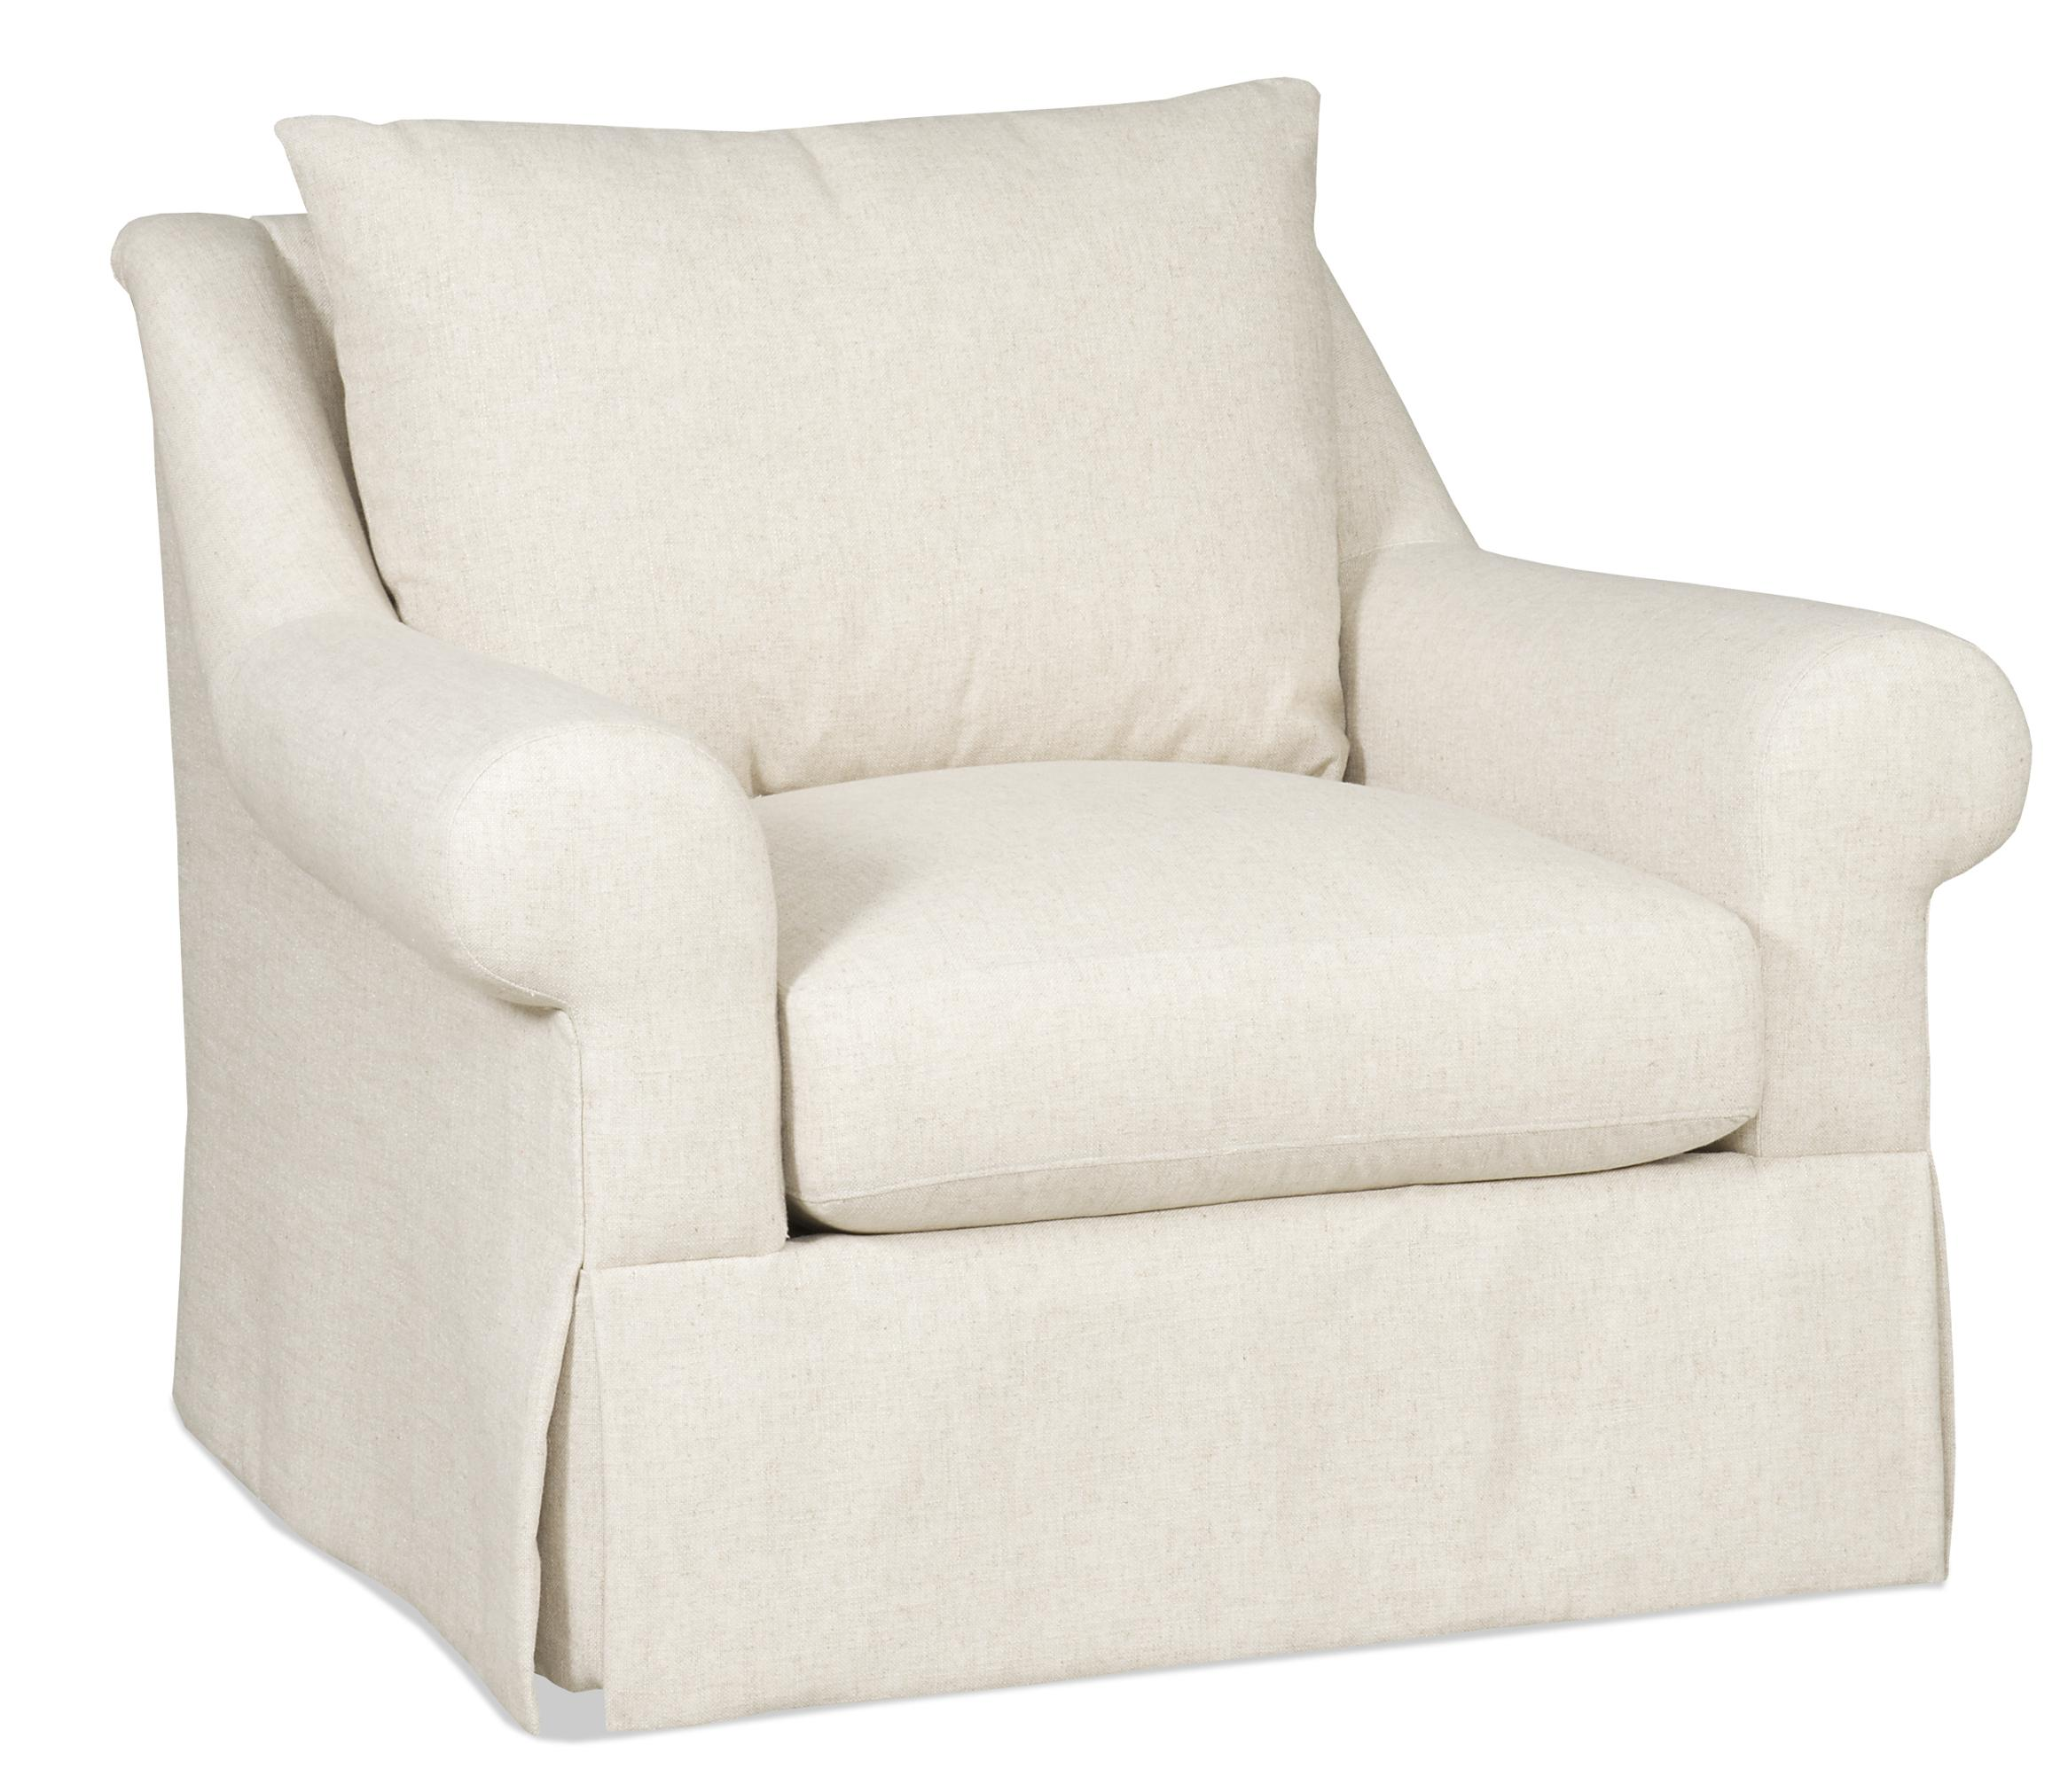 sam moore carson sofa sleepers beds traditional skirted chair with rolled ...